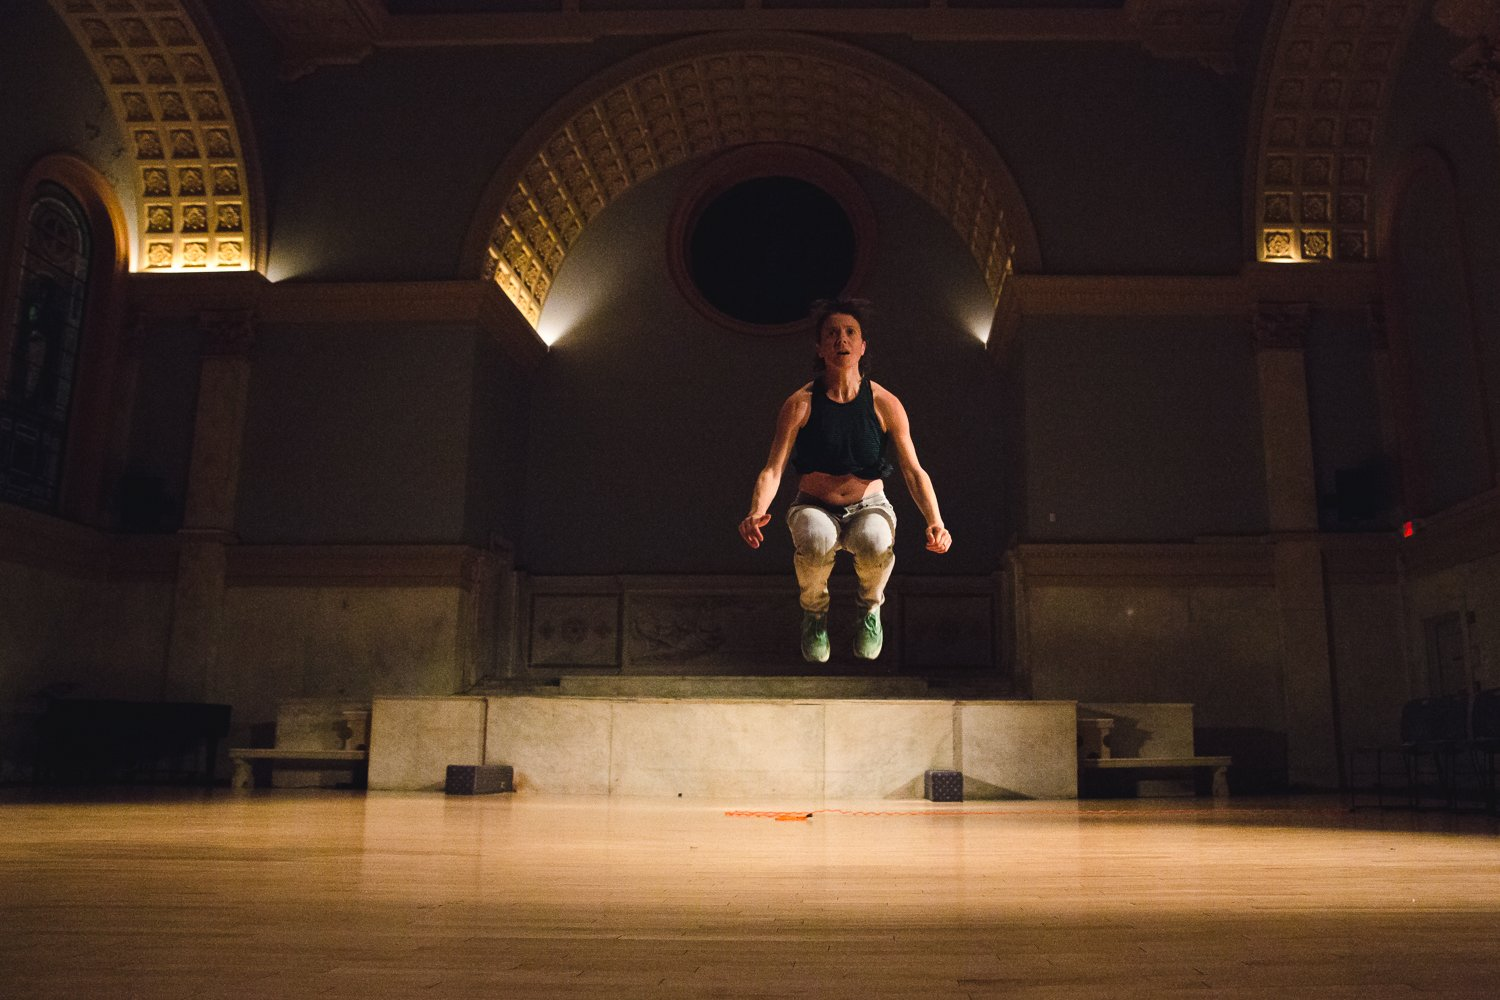 """Dance Artists Meredith Bove and Lailye Weidman's """"Uncertain Distances"""" Residency at A.P.E"""